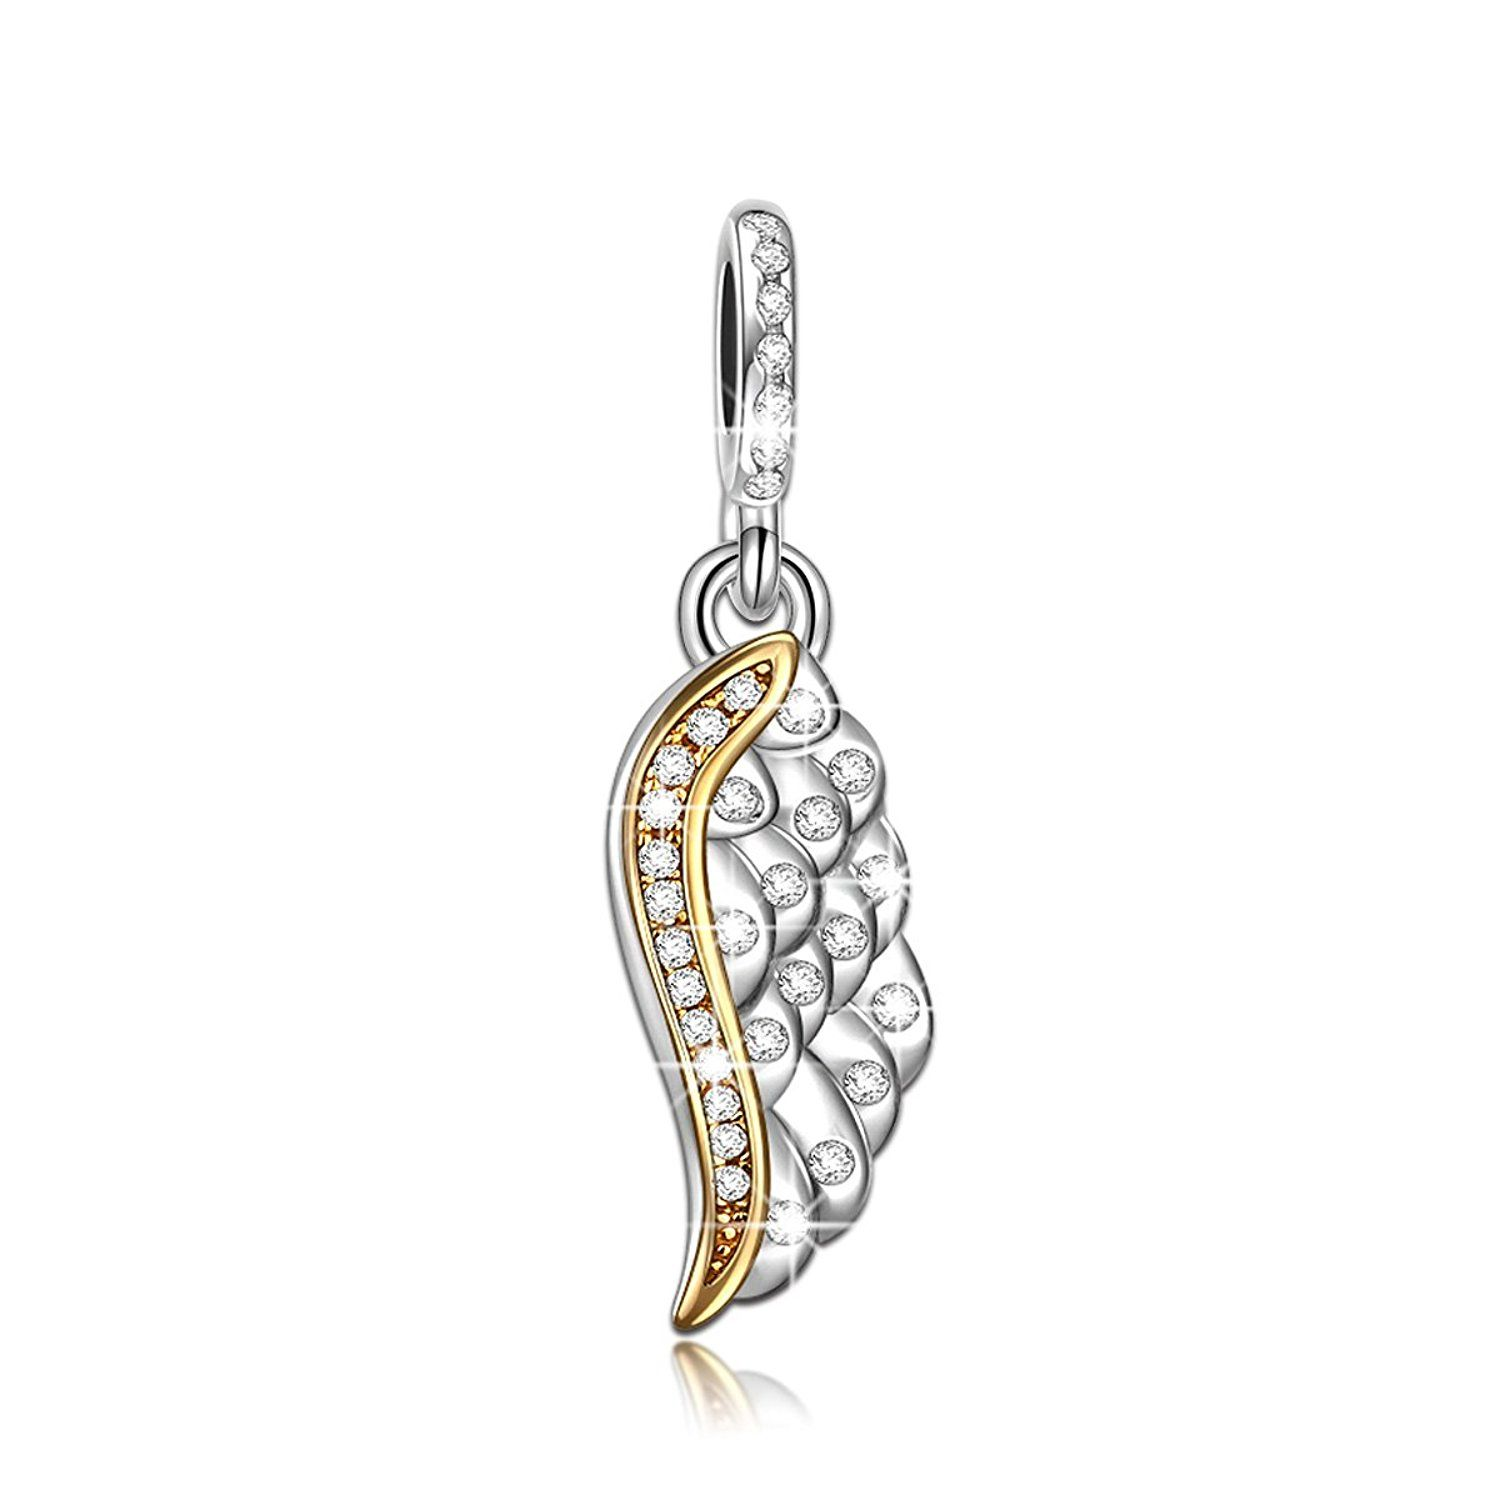 NINAQUEEN - Colorful Angel Wing - 925 Sterling Silver Charms Nickel-free E6PqTr